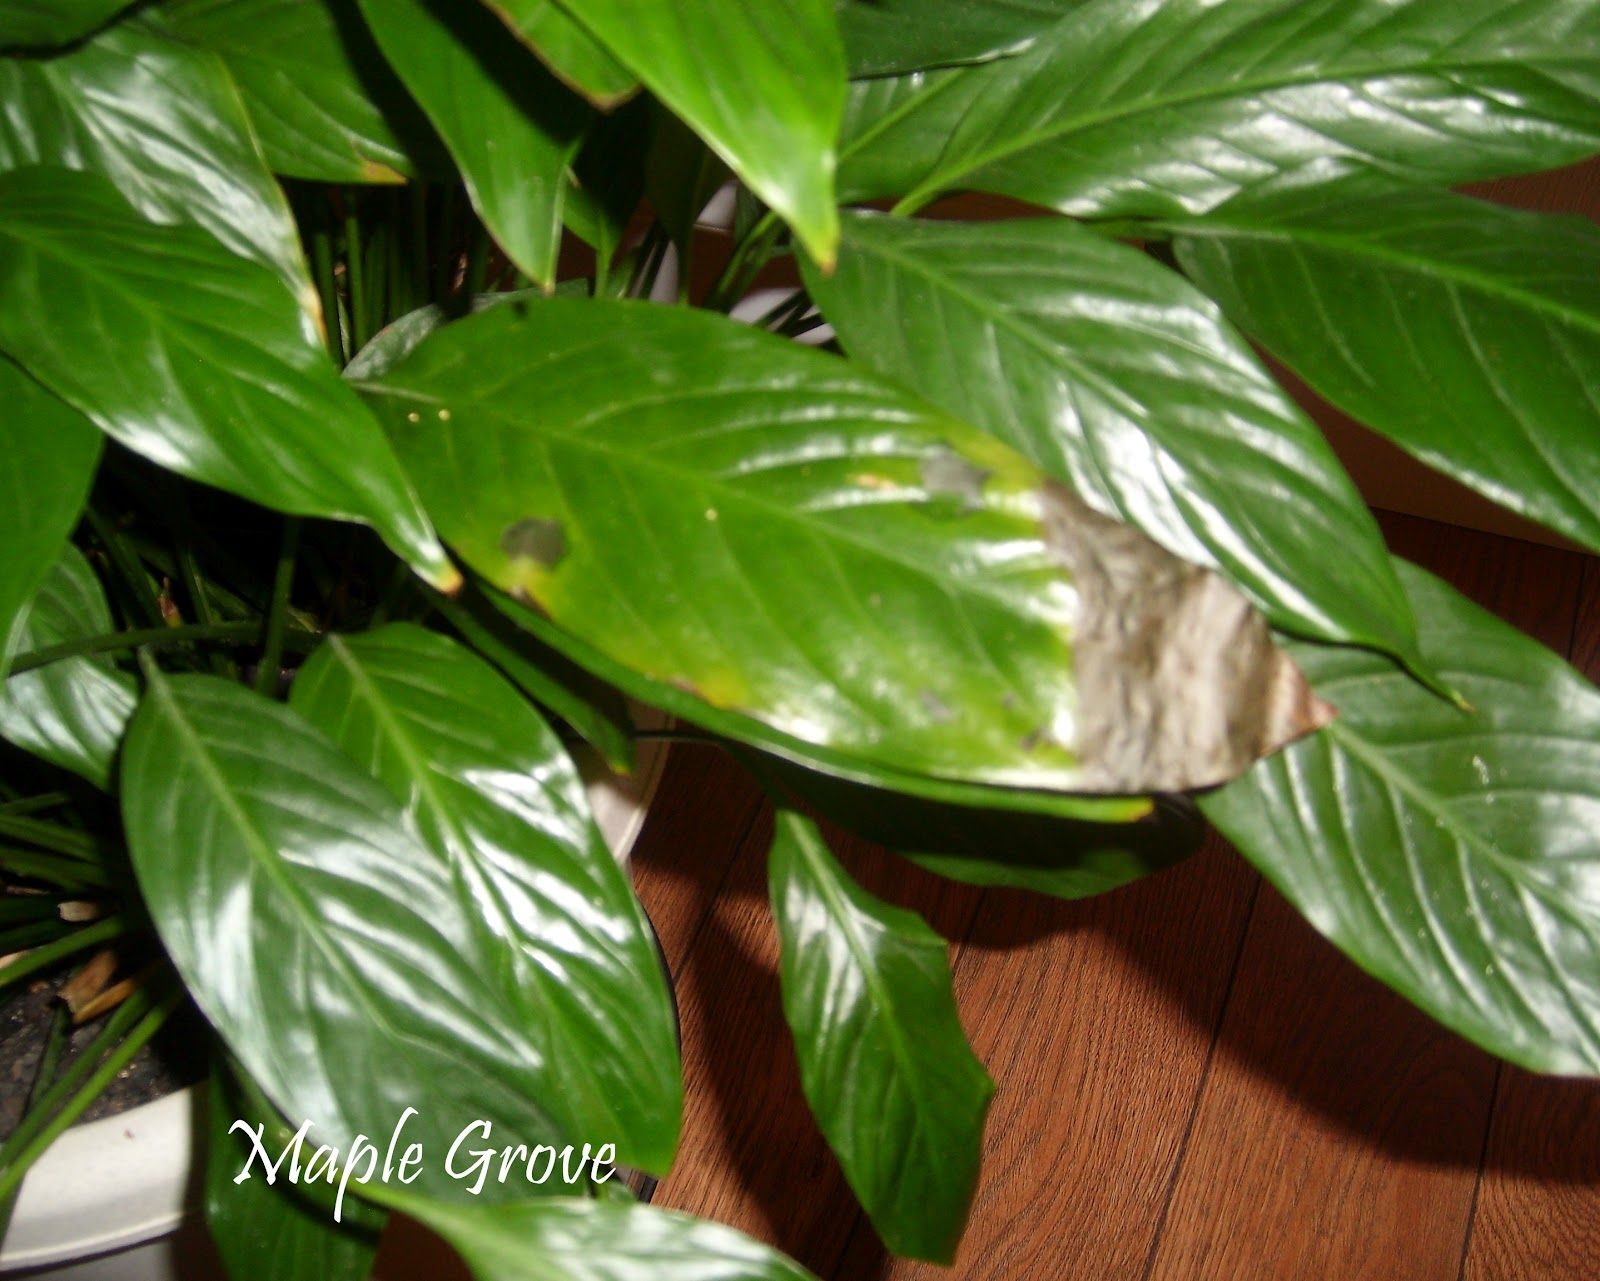 Damaged leaf on the peace lily plant deterioration like this can be damaged leaf on the peace lily plant deterioration like this can be izmirmasajfo Choice Image